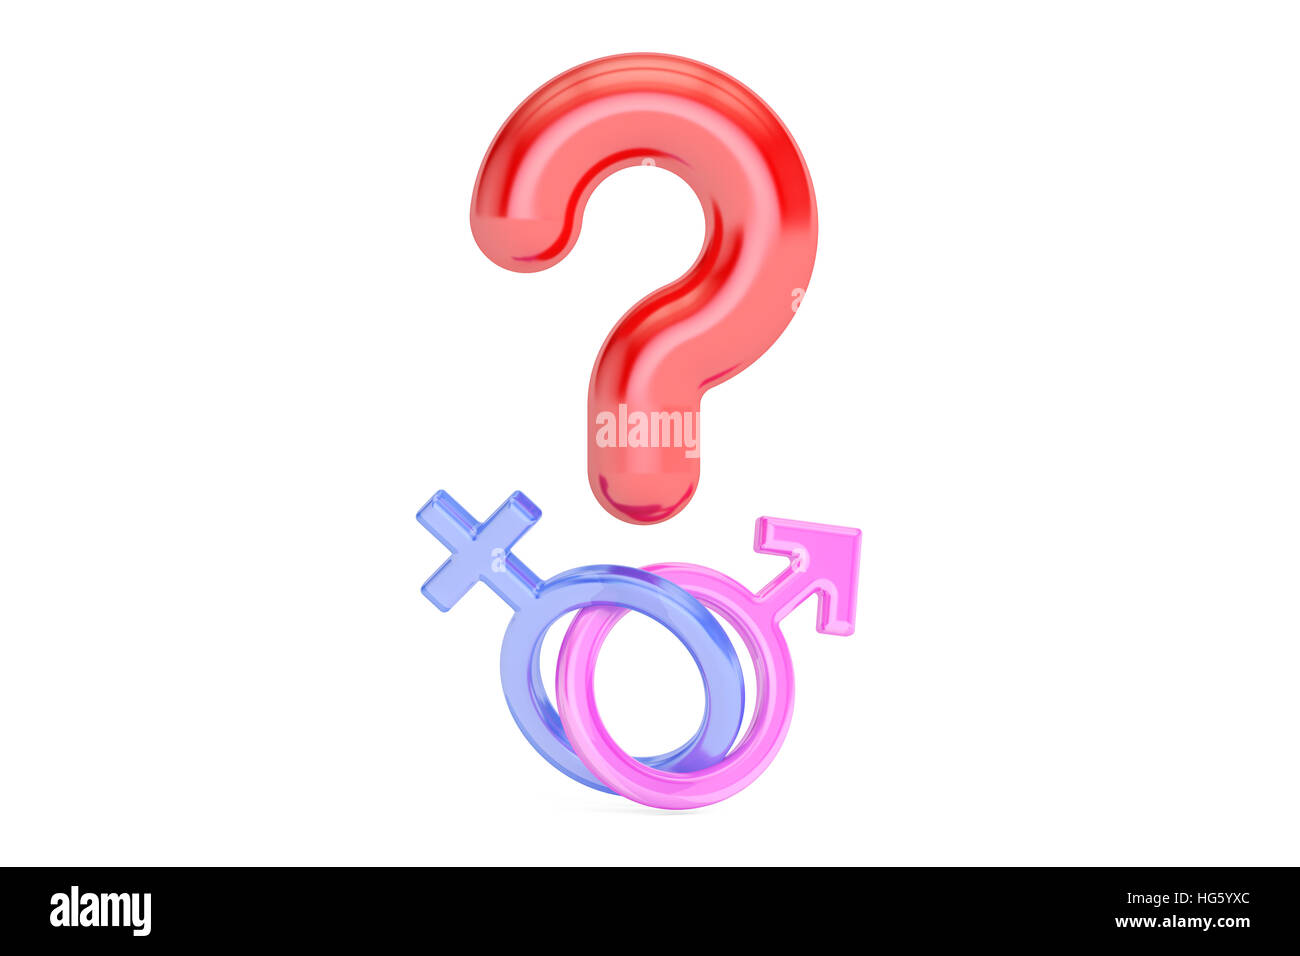 Question Mark With Gender Female And Male Symbols 3d Rendering